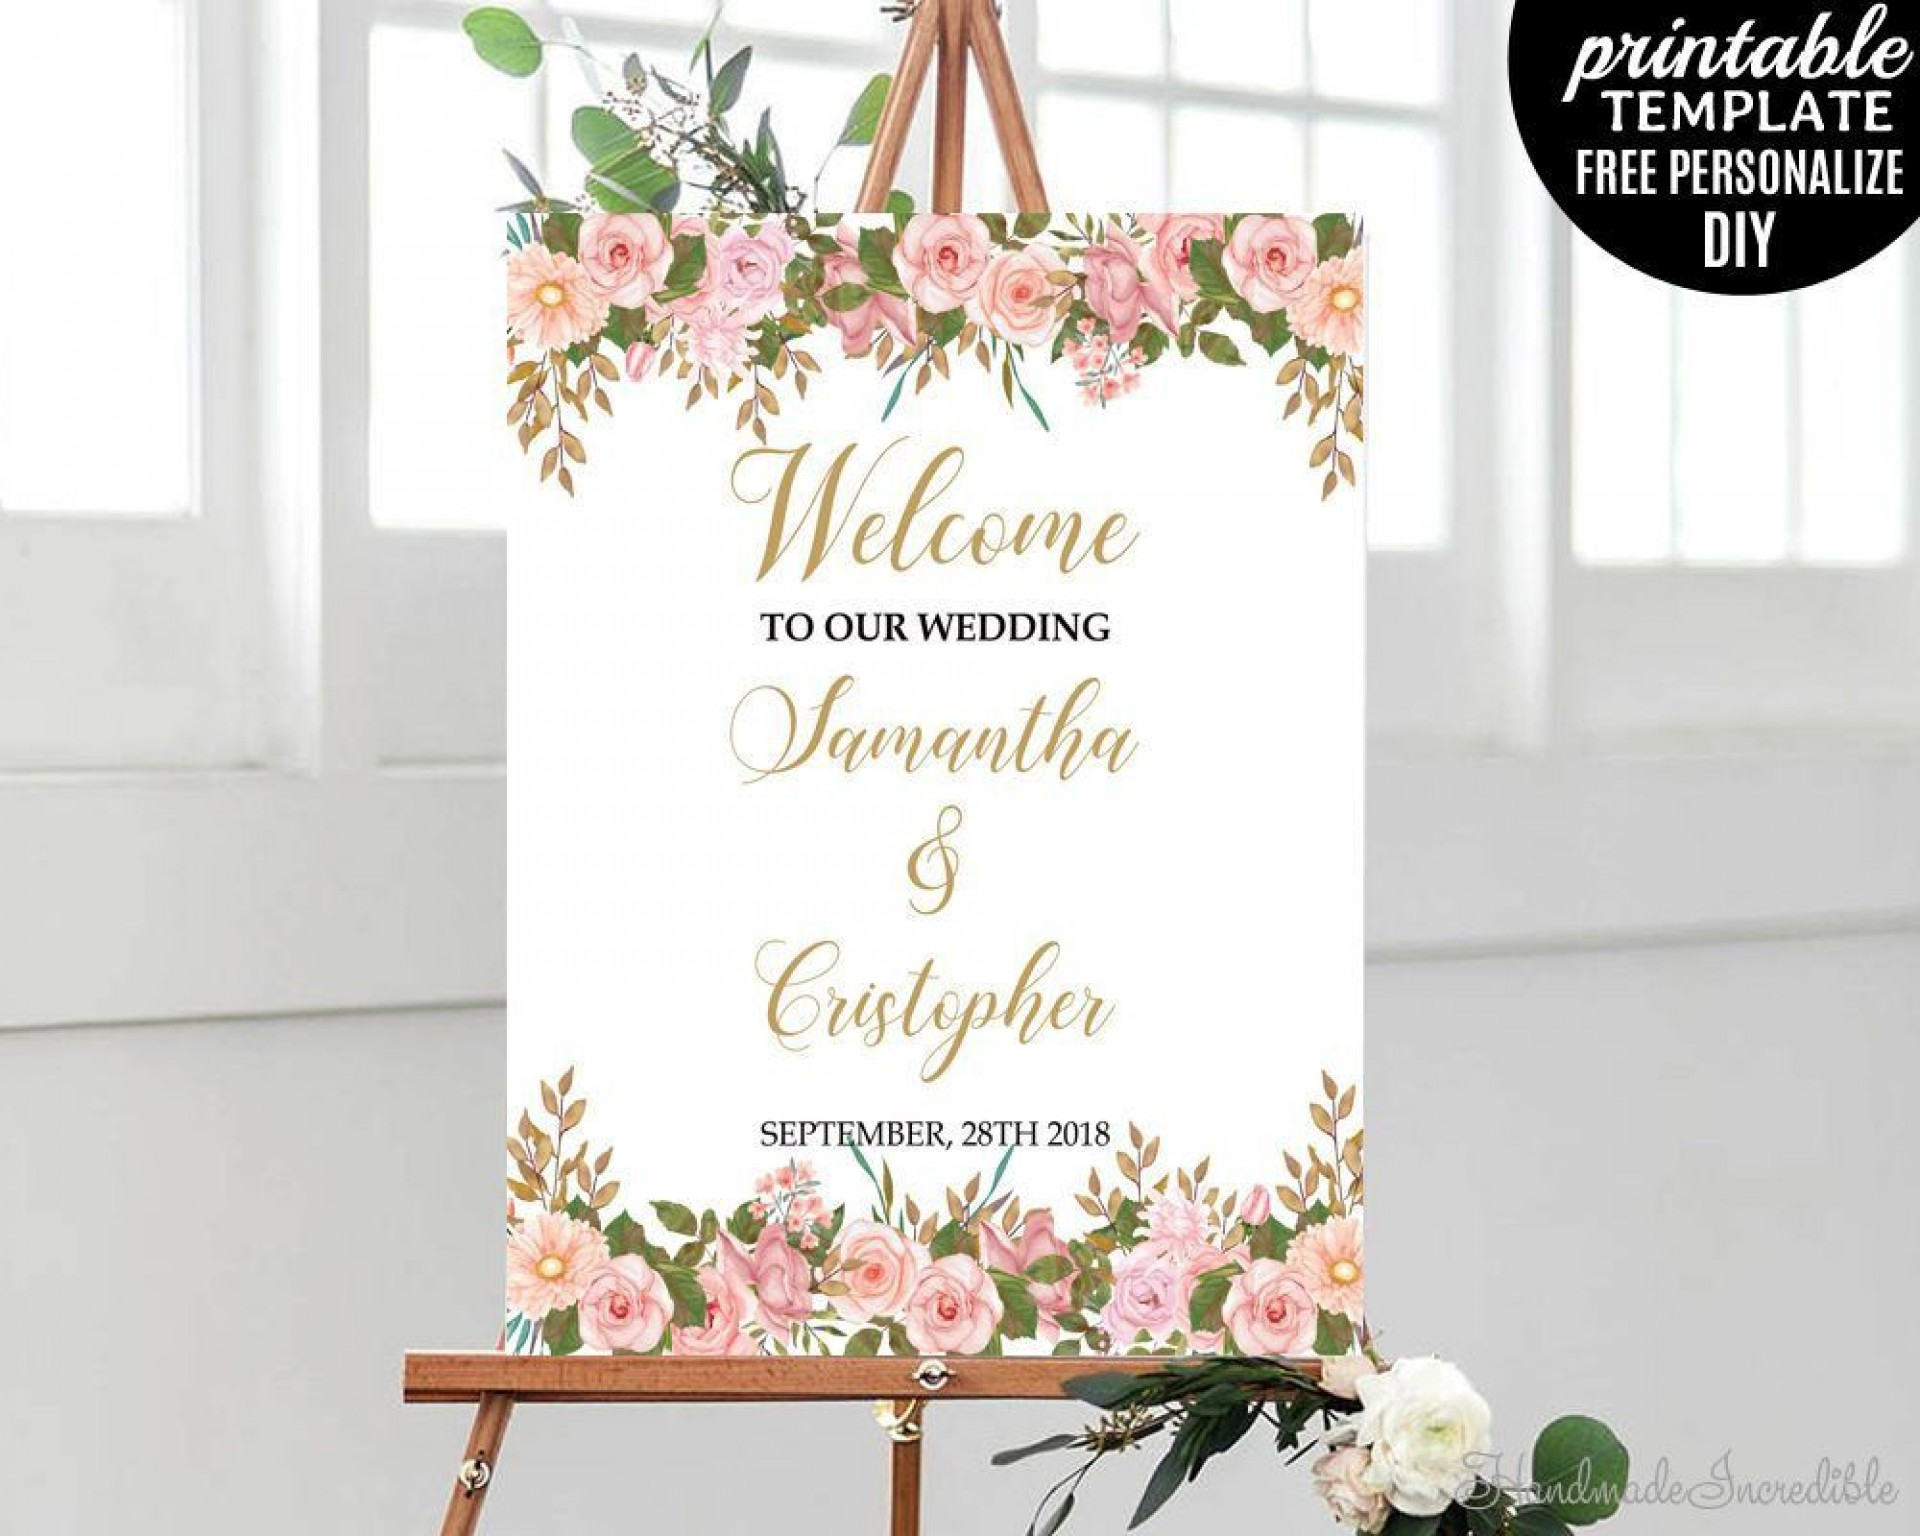 009 Stunning Wedding Welcome Sign Template Free Design 1920